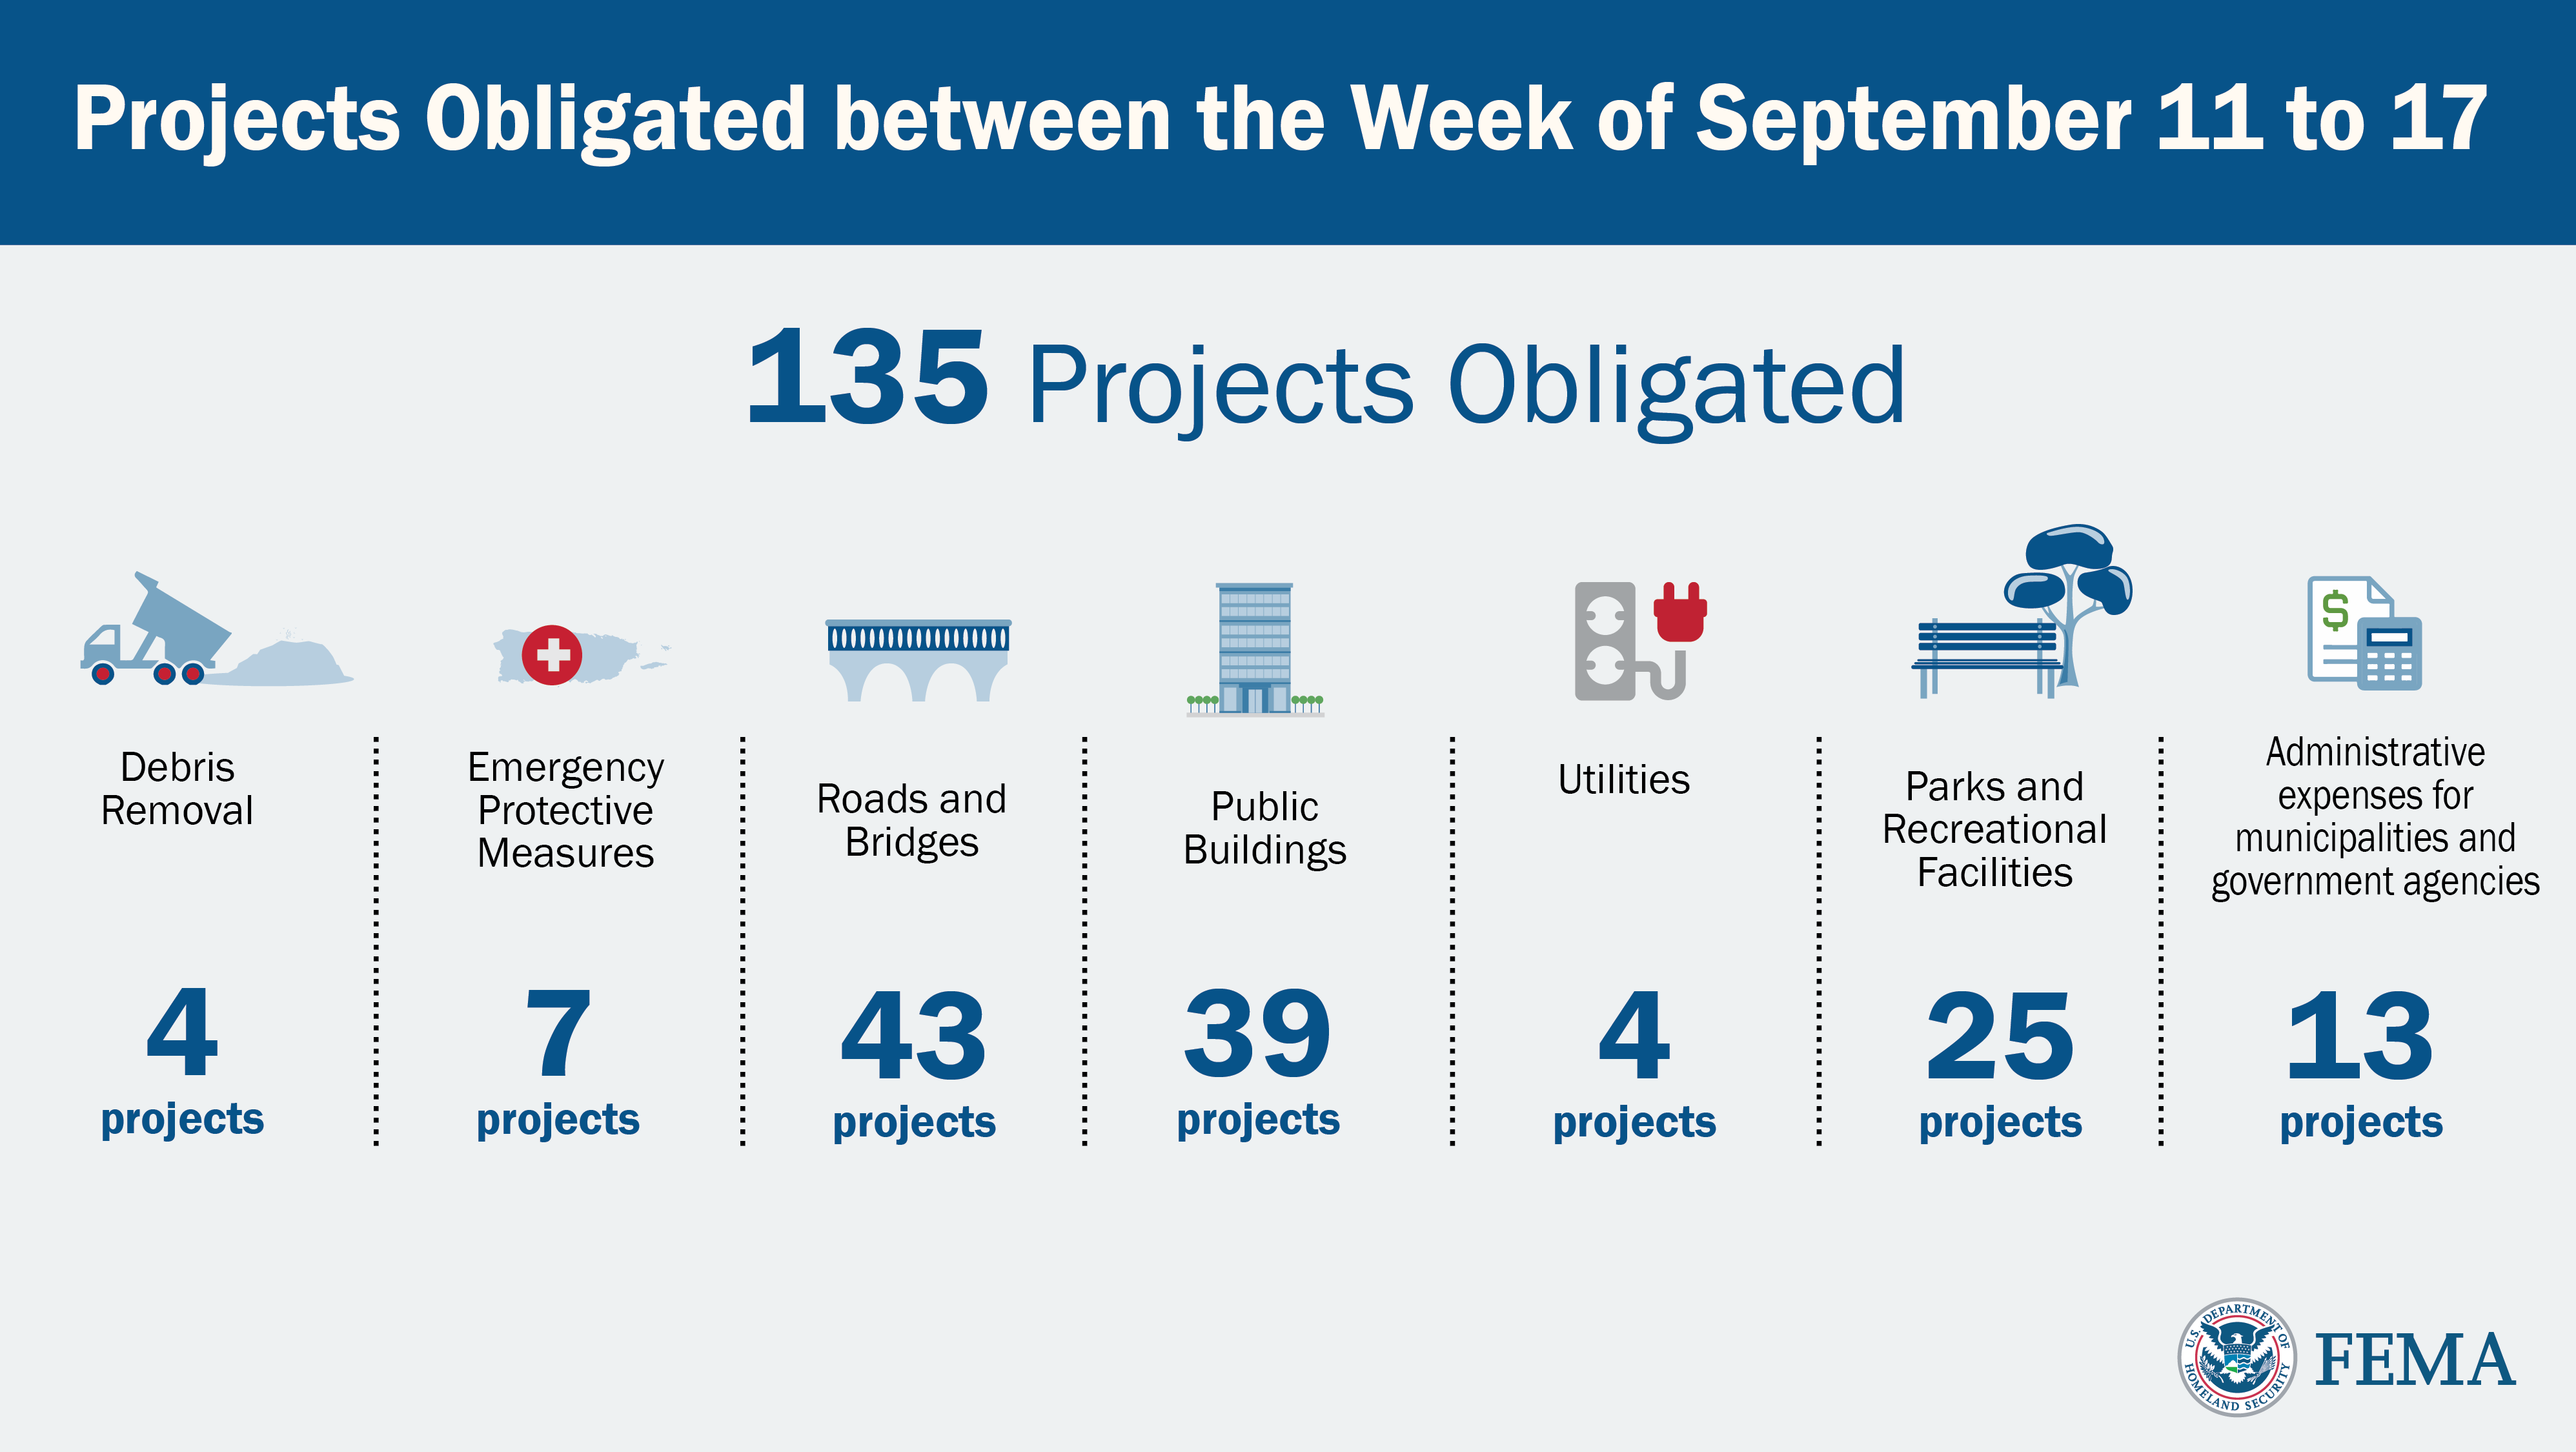 Projects Obligated numbers